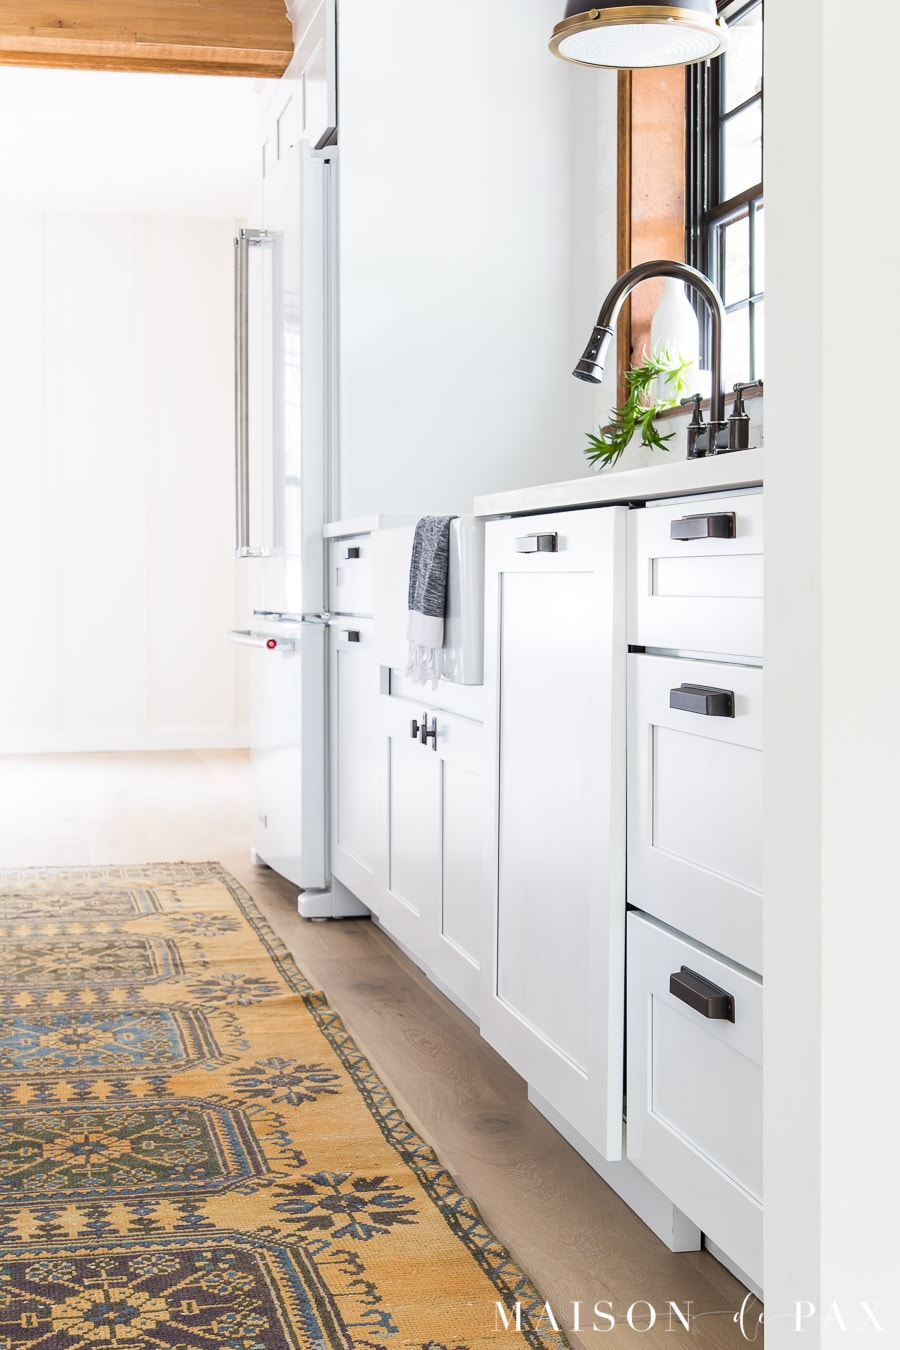 kitchenain panel ready dishwasher in modern farmhouse kitchen | Maison de Pax